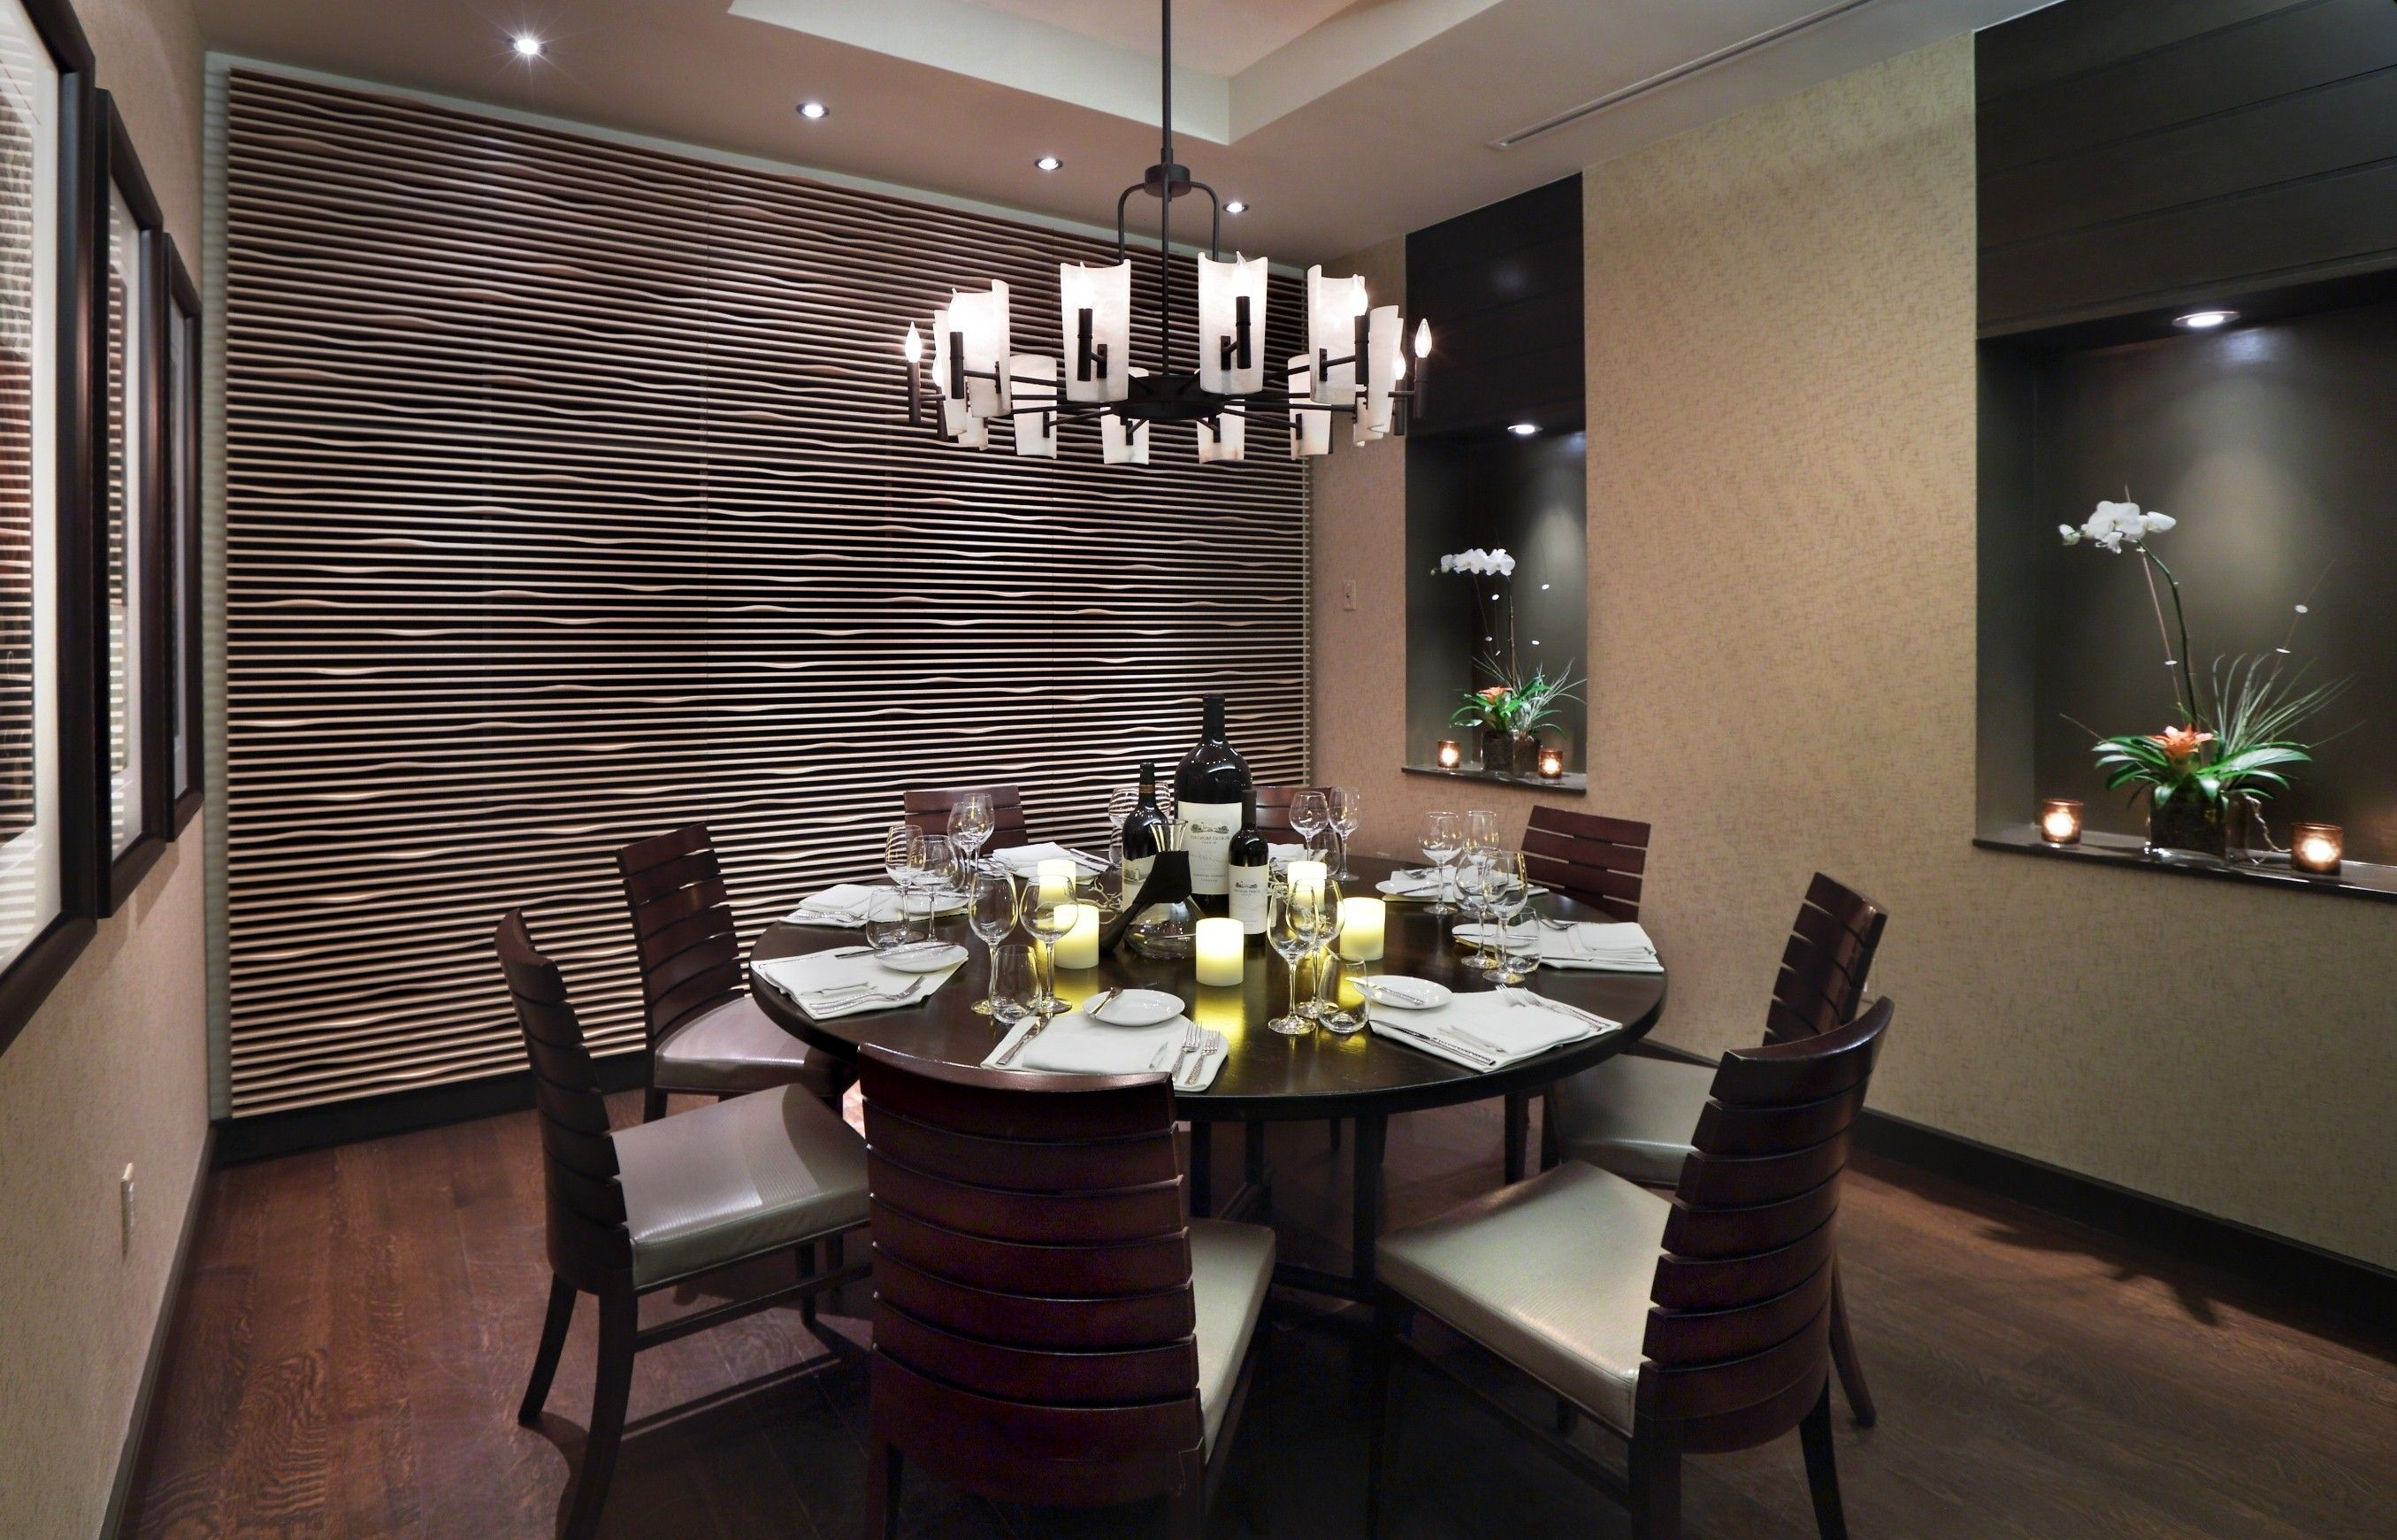 Contemporary Lighting For Dining Room Alluring Dining Room Yellow And Black Dining Chairs Modern Dining Room Decorating Design